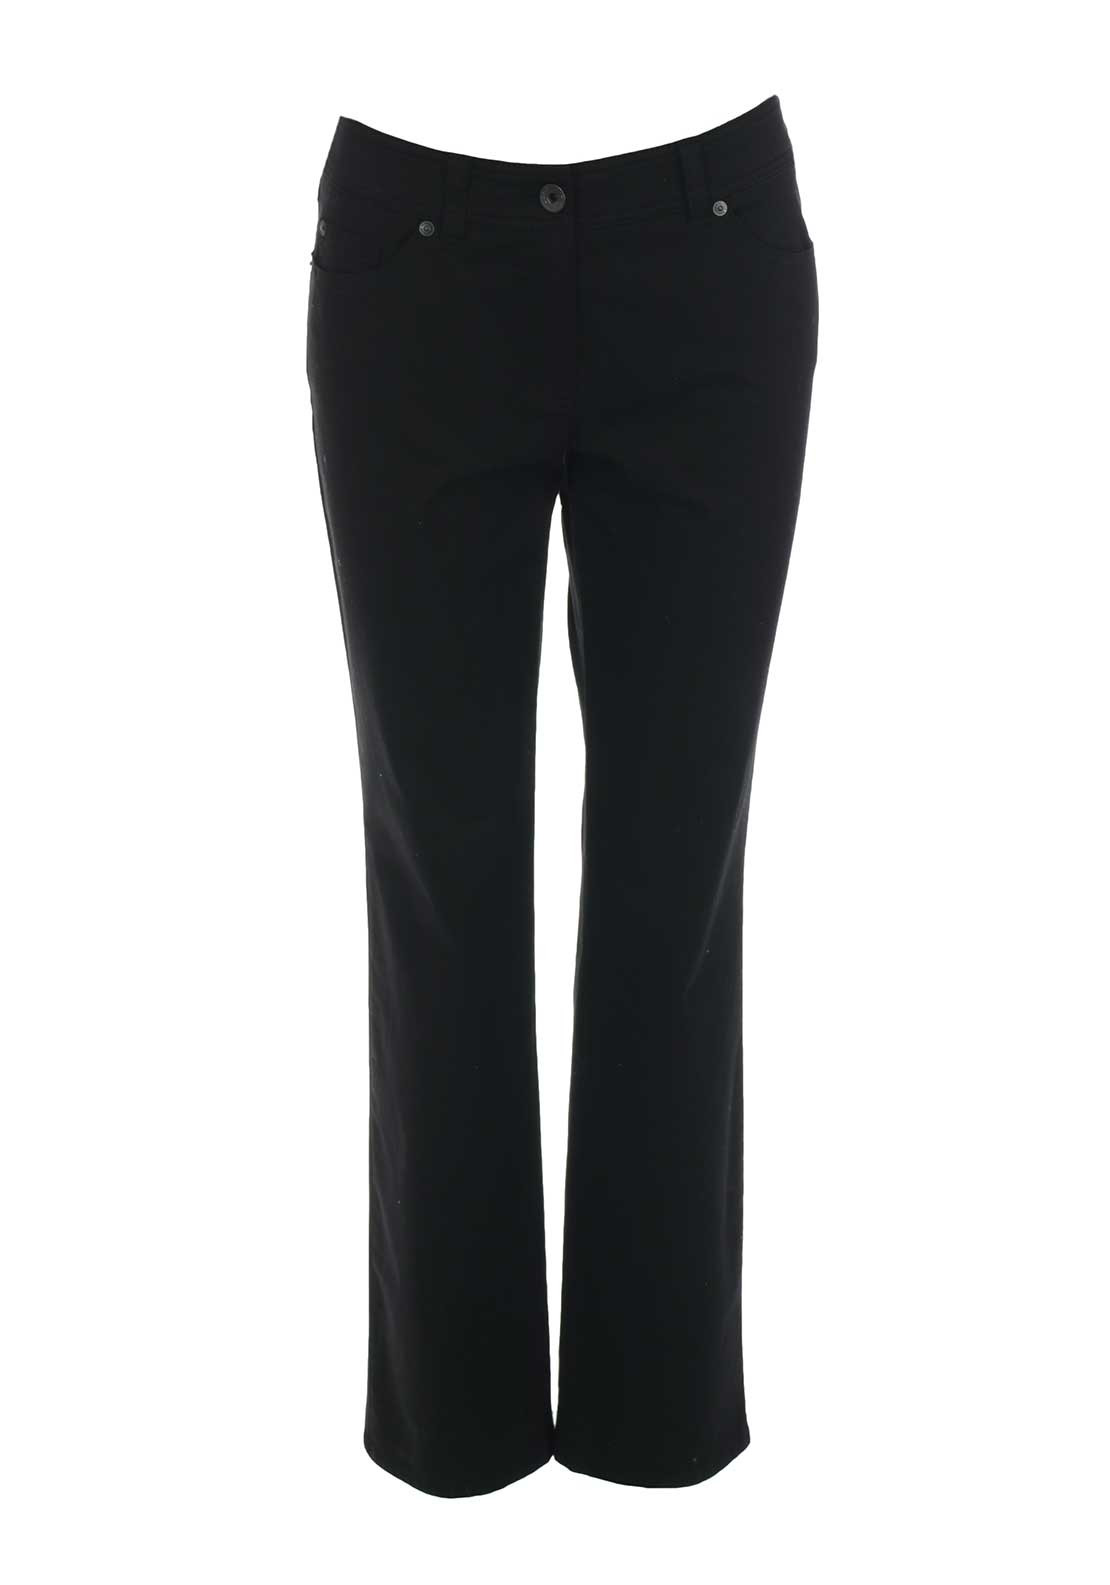 Gerry Weber Danny Regular Leg Jeans, Black